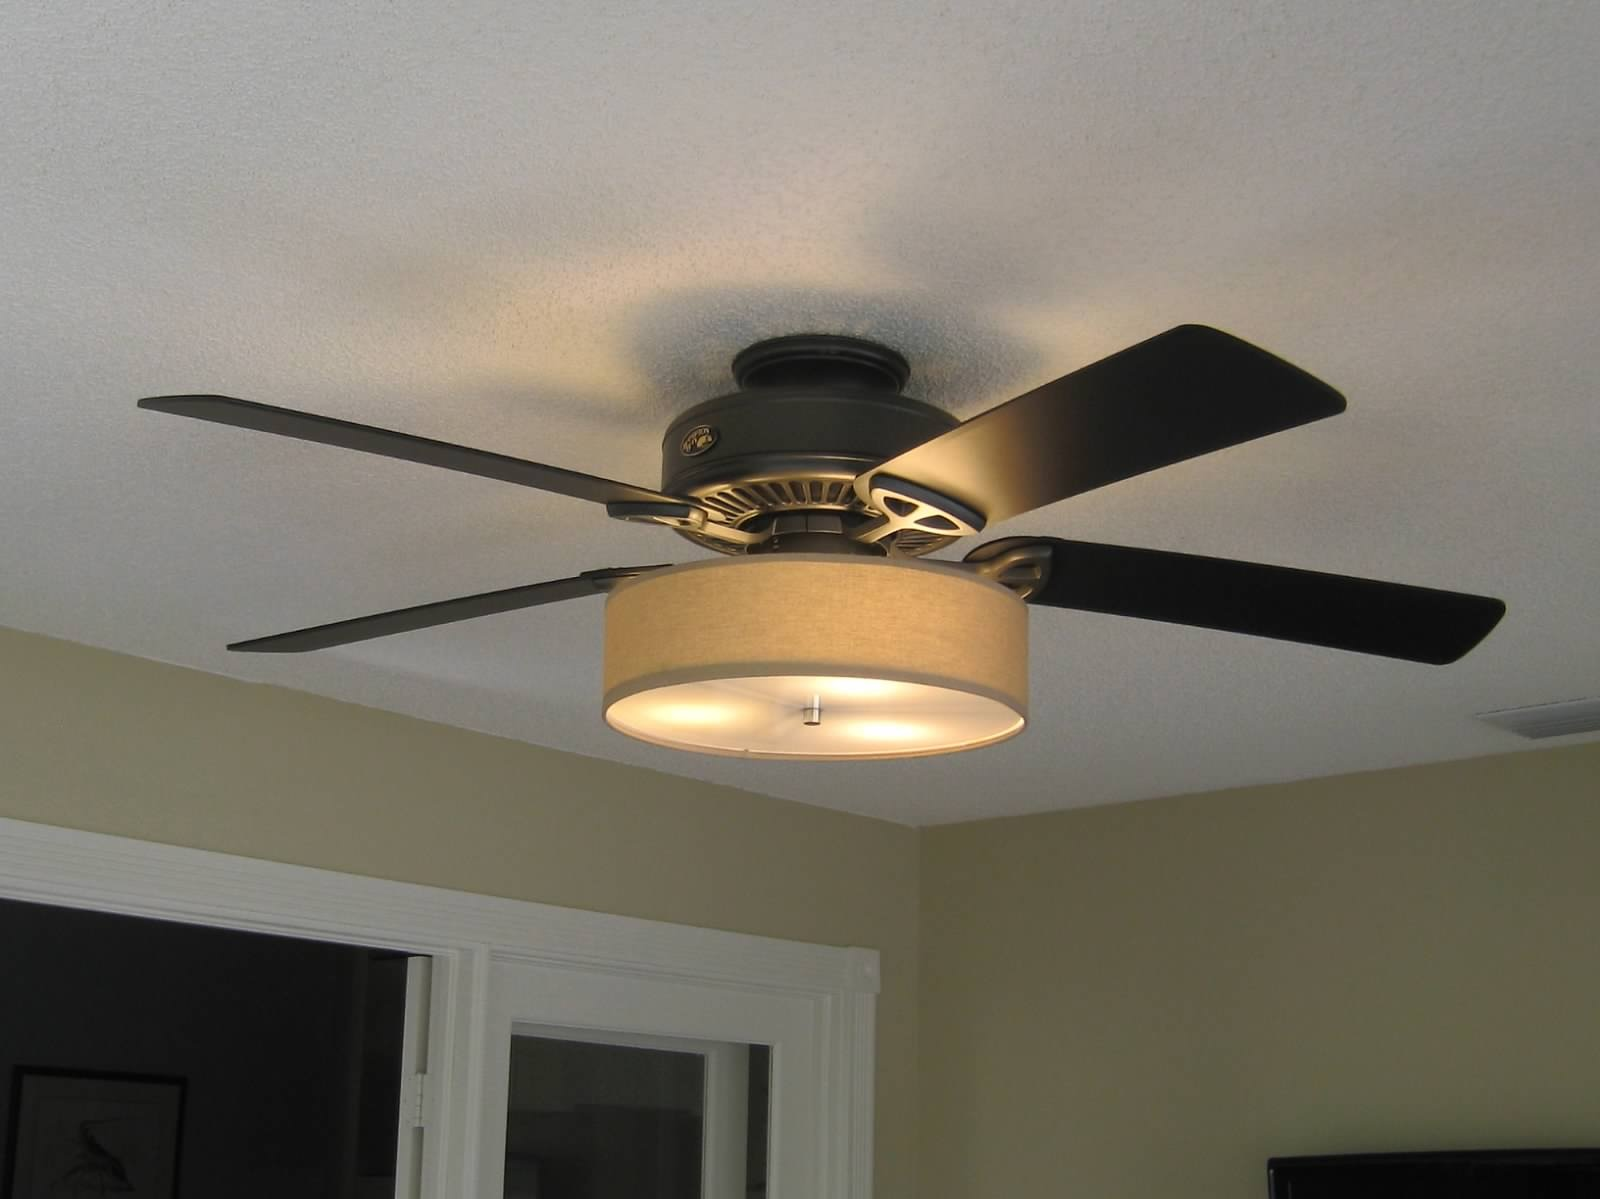 Home / Ceiling Fan Light Kits / Low Profile Linen Drum Shade Light Kit ...